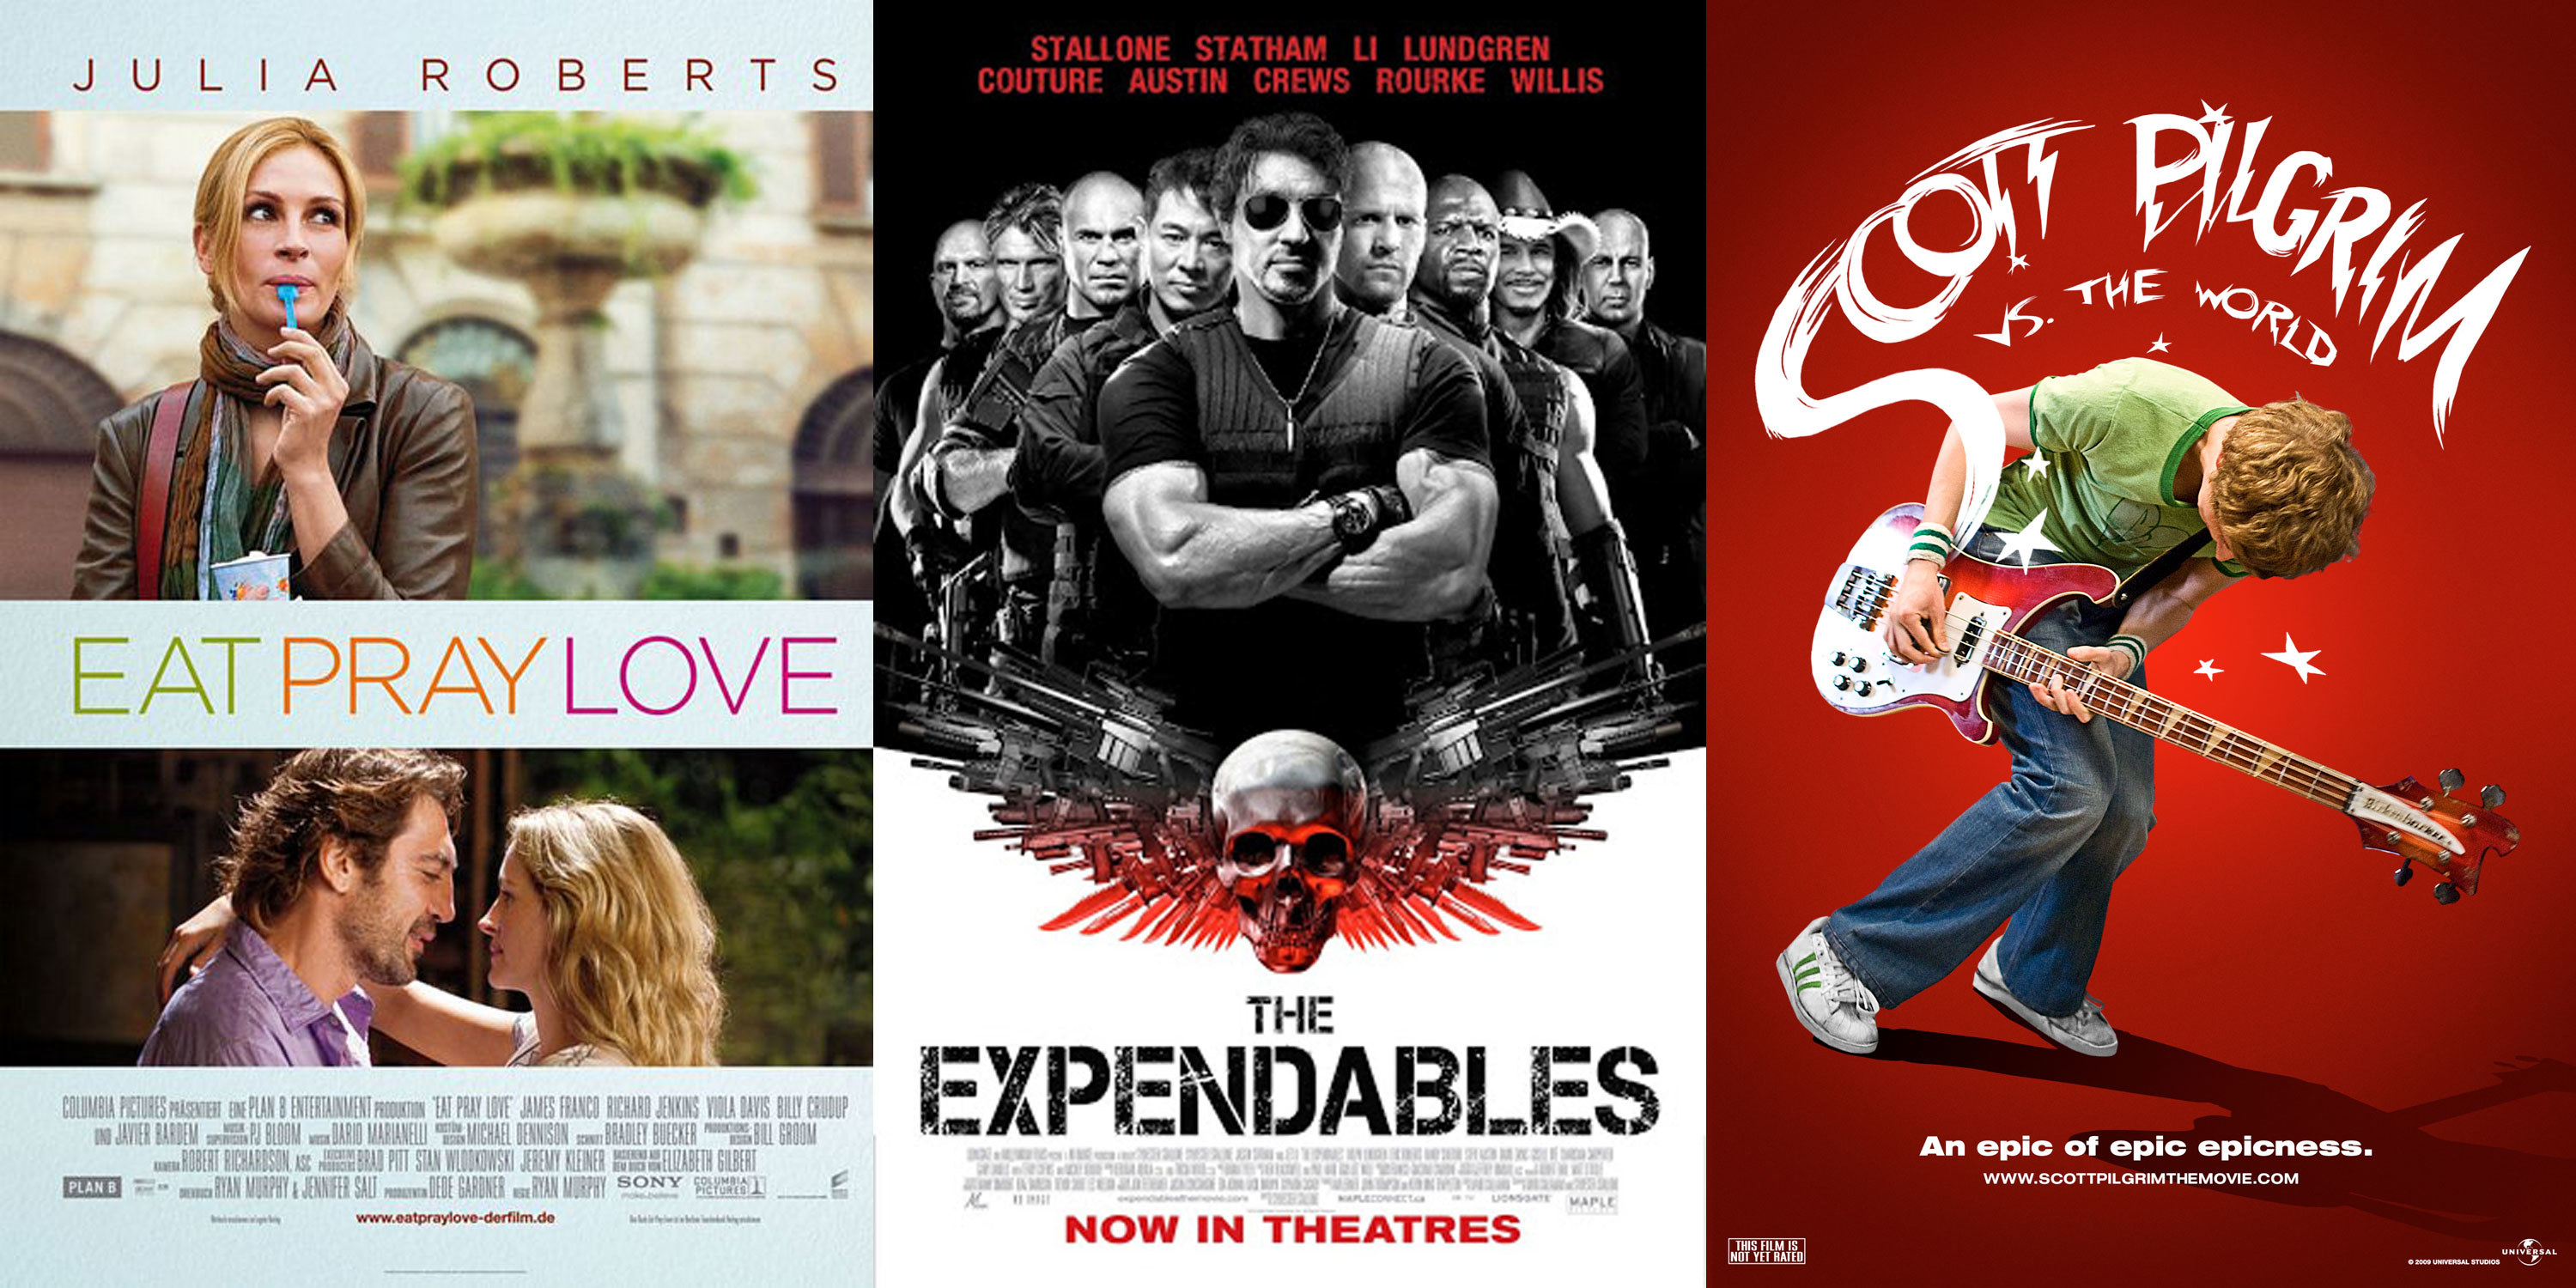 """The movie posters for """"Eat Pray Love,"""" """"The Expendables,"""" and """"Scott Pilgrim vs. the World."""""""